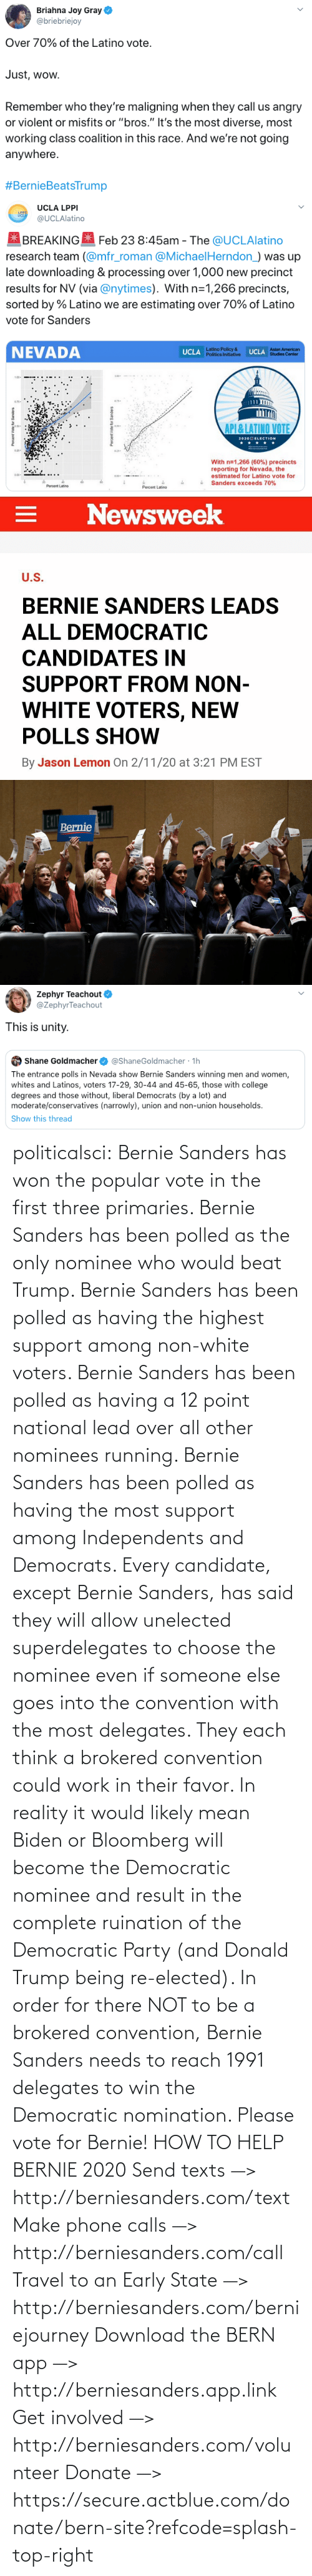 Bernie 2020: politicalsci: Bernie Sanders has won the popular vote in the first three primaries. Bernie Sanders has  been polled as the only nominee who would beat Trump. Bernie Sanders  has been polled as having the highest support among non-white voters.  Bernie Sanders has been polled as having a 12 point national lead over  all other nominees running. Bernie Sanders has been polled as having the most support among Independents and Democrats.  Every candidate, except Bernie Sanders, has said they will allow  unelected superdelegates to choose the nominee even if someone else goes  into the convention with the most delegates. They each think a brokered  convention could work in their favor. In  reality it would likely mean Biden or Bloomberg will become the  Democratic nominee and result in the complete ruination of the  Democratic Party (and Donald Trump being re-elected). In order for there  NOT to be a brokered  convention, Bernie Sanders needs to reach 1991 delegates to win the  Democratic  nomination. Please vote for Bernie!  HOW TO HELP BERNIE 2020 Send texts —> http://berniesanders.com/text  Make phone calls —> http://berniesanders.com/call  Travel to an Early State —> http://berniesanders.com/berniejourney  Download the BERN app —> http://berniesanders.app.link  Get involved —> http://berniesanders.com/volunteer Donate —> https://secure.actblue.com/donate/bern-site?refcode=splash-top-right